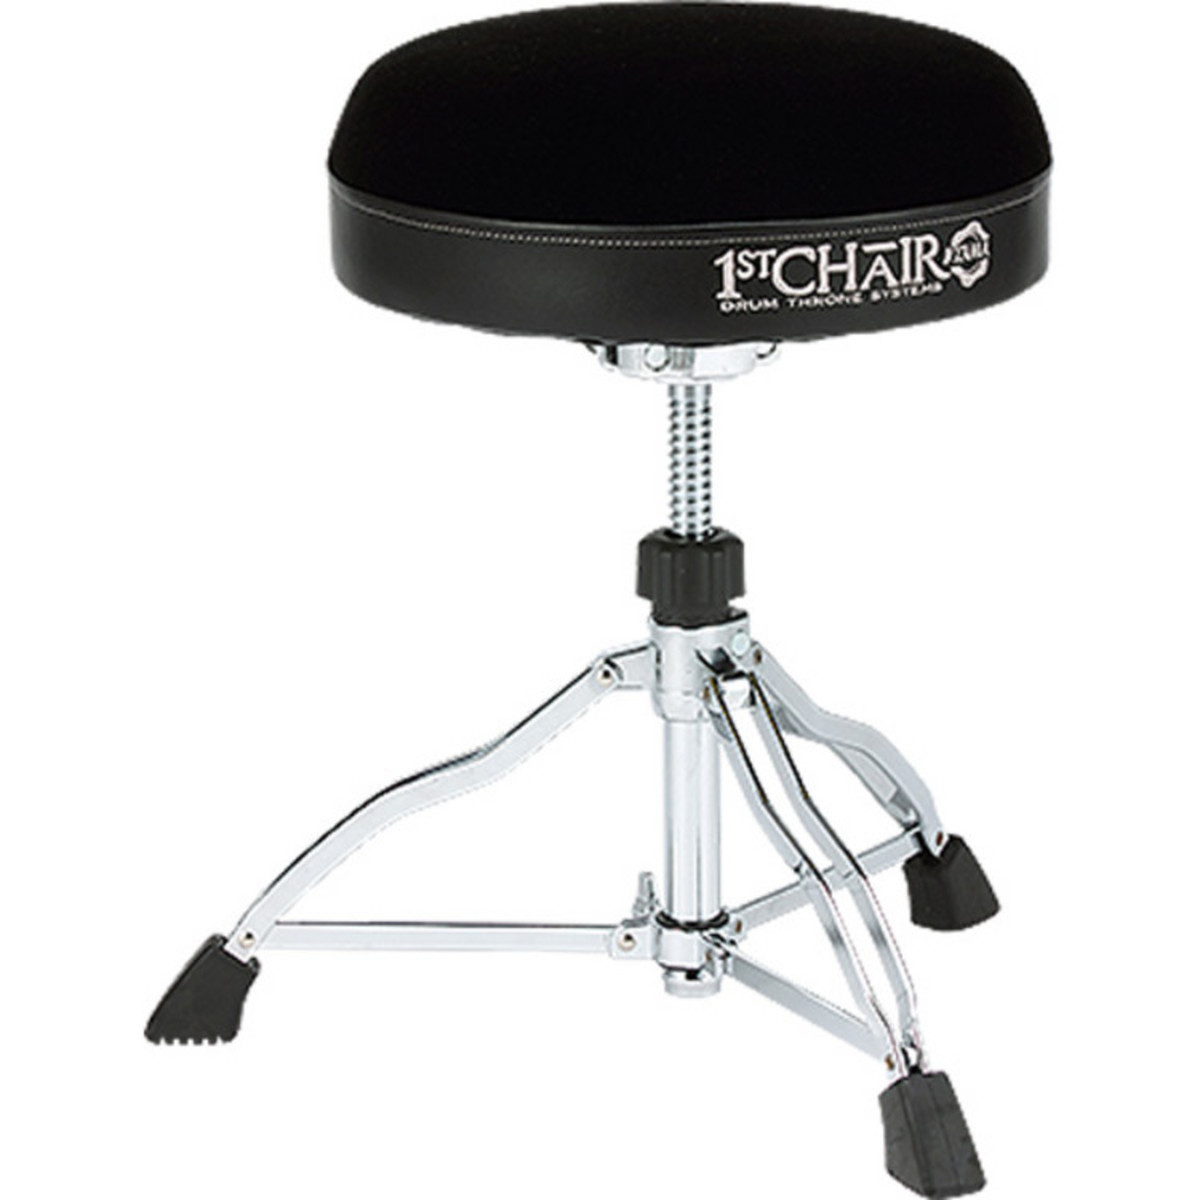 Drum Chair Disc Tama Ht630cs First Chair Round Rider Low Cloth Top